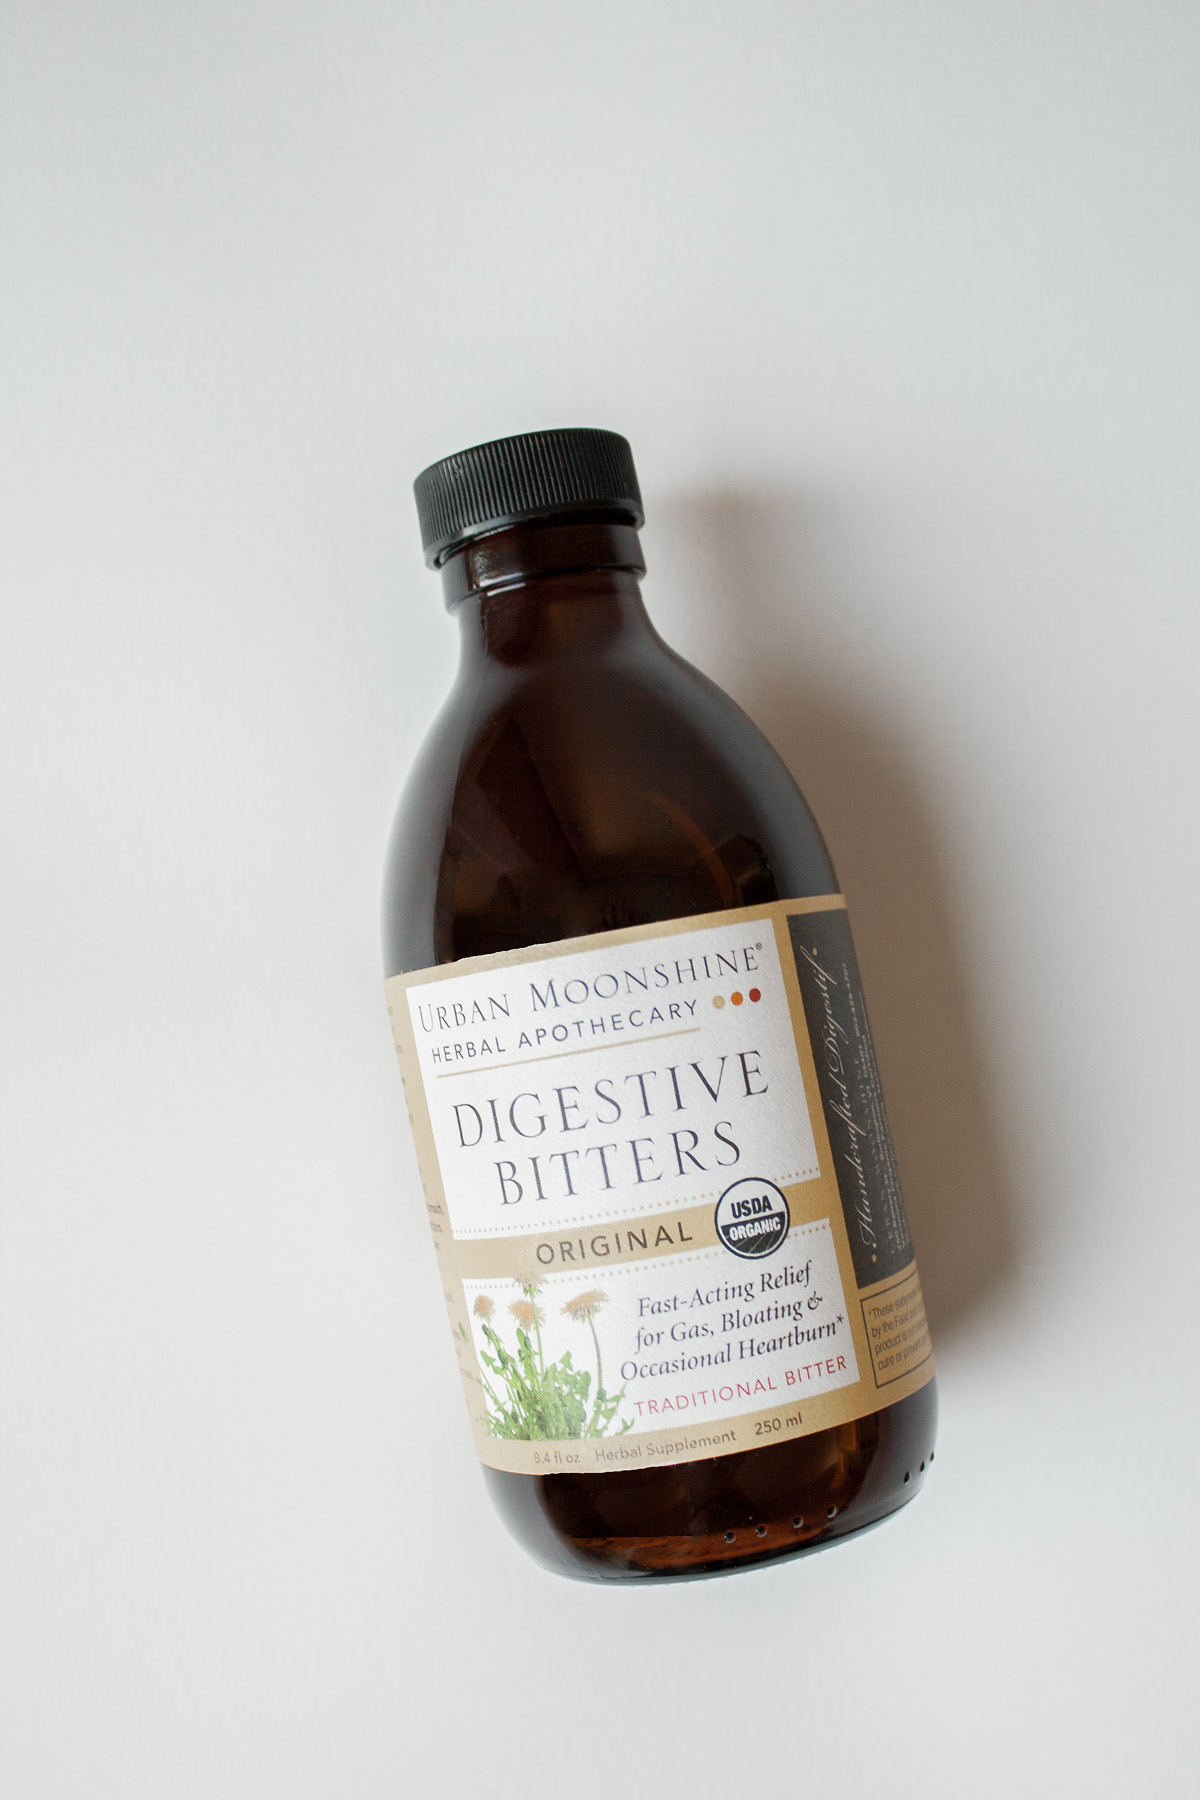 Pantry perfection with Thrive Market, the clean, healthy, superfood, organic nourishing dry food resource. Urban Moonshine digestive bitters are just one example of the range of healing products they offer!